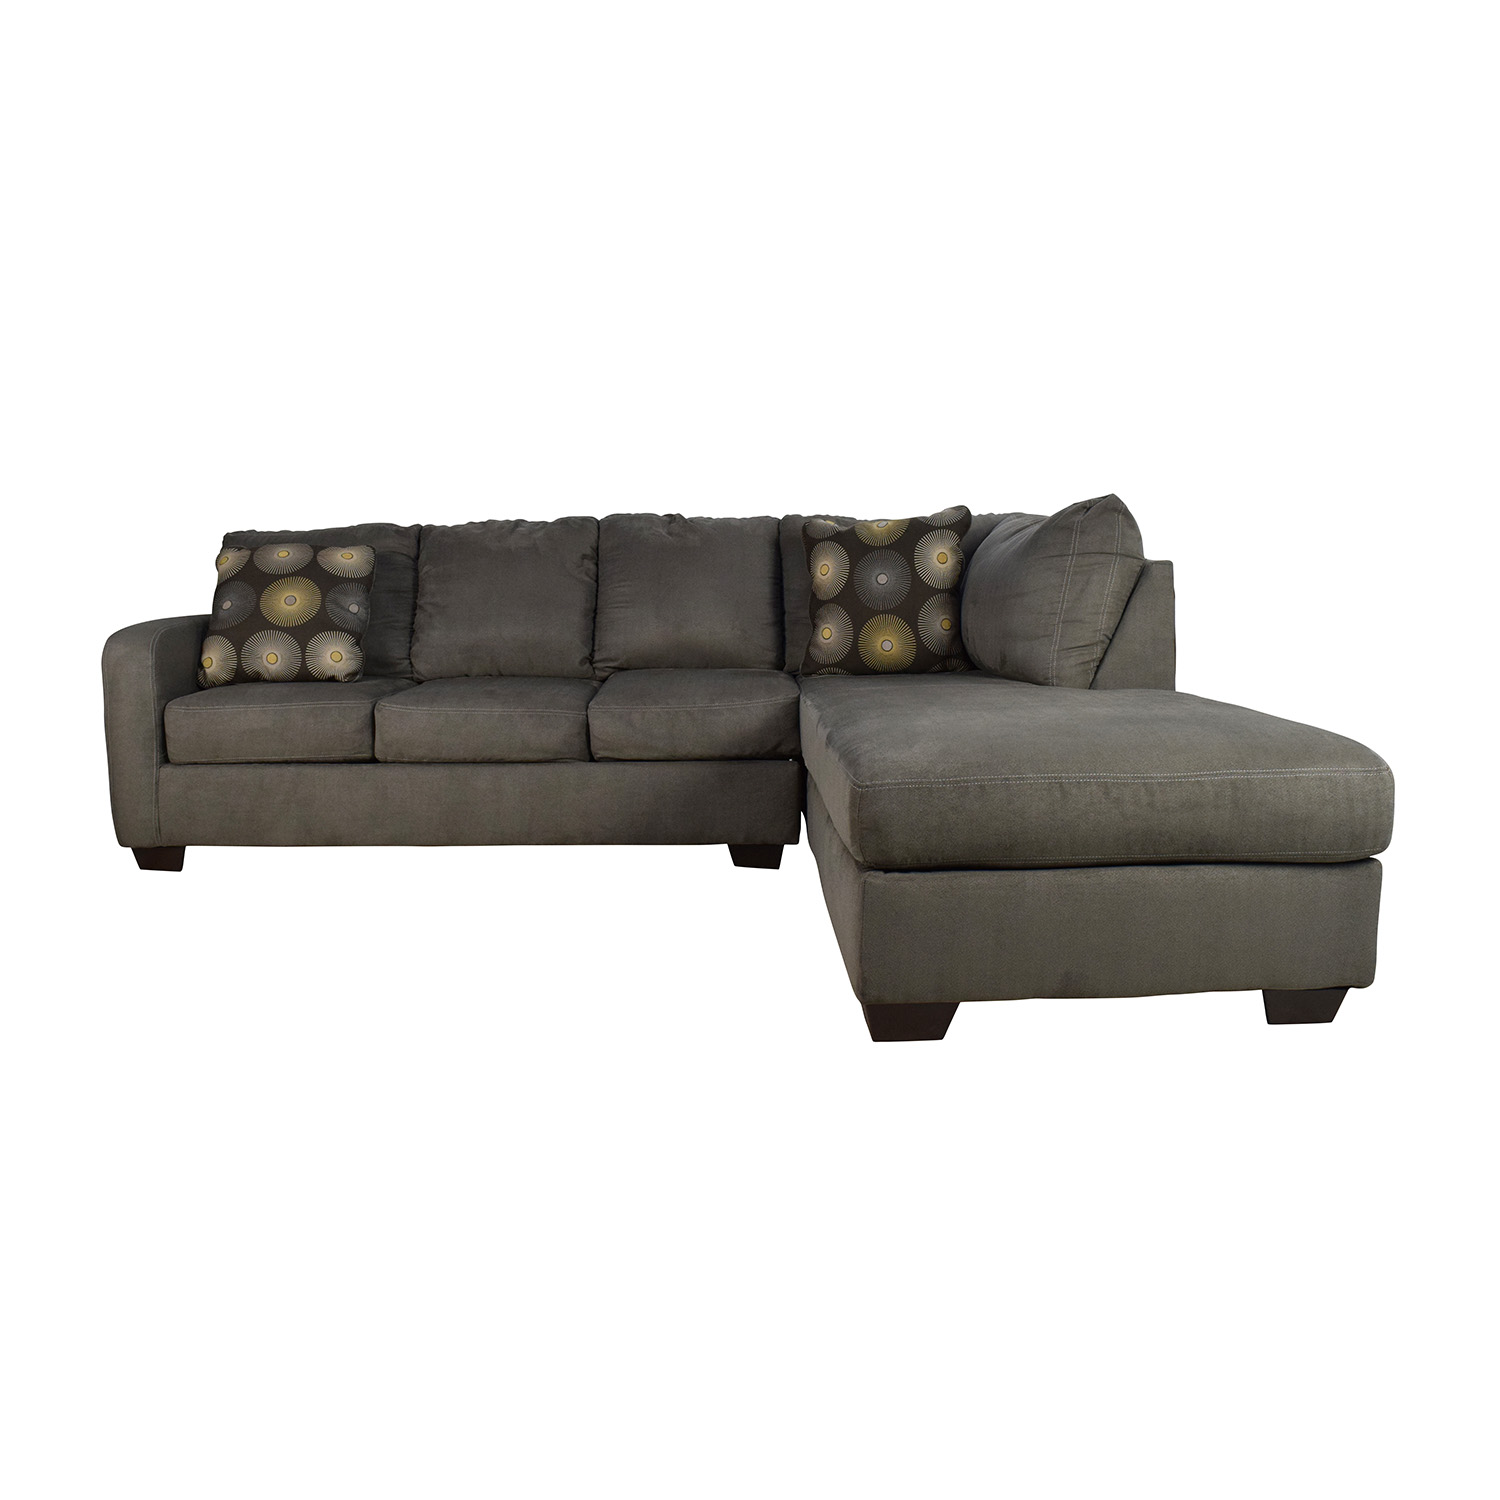 30% OFF - Ashley Furniture Ashley Furniture Waverly Gray Sectional ...